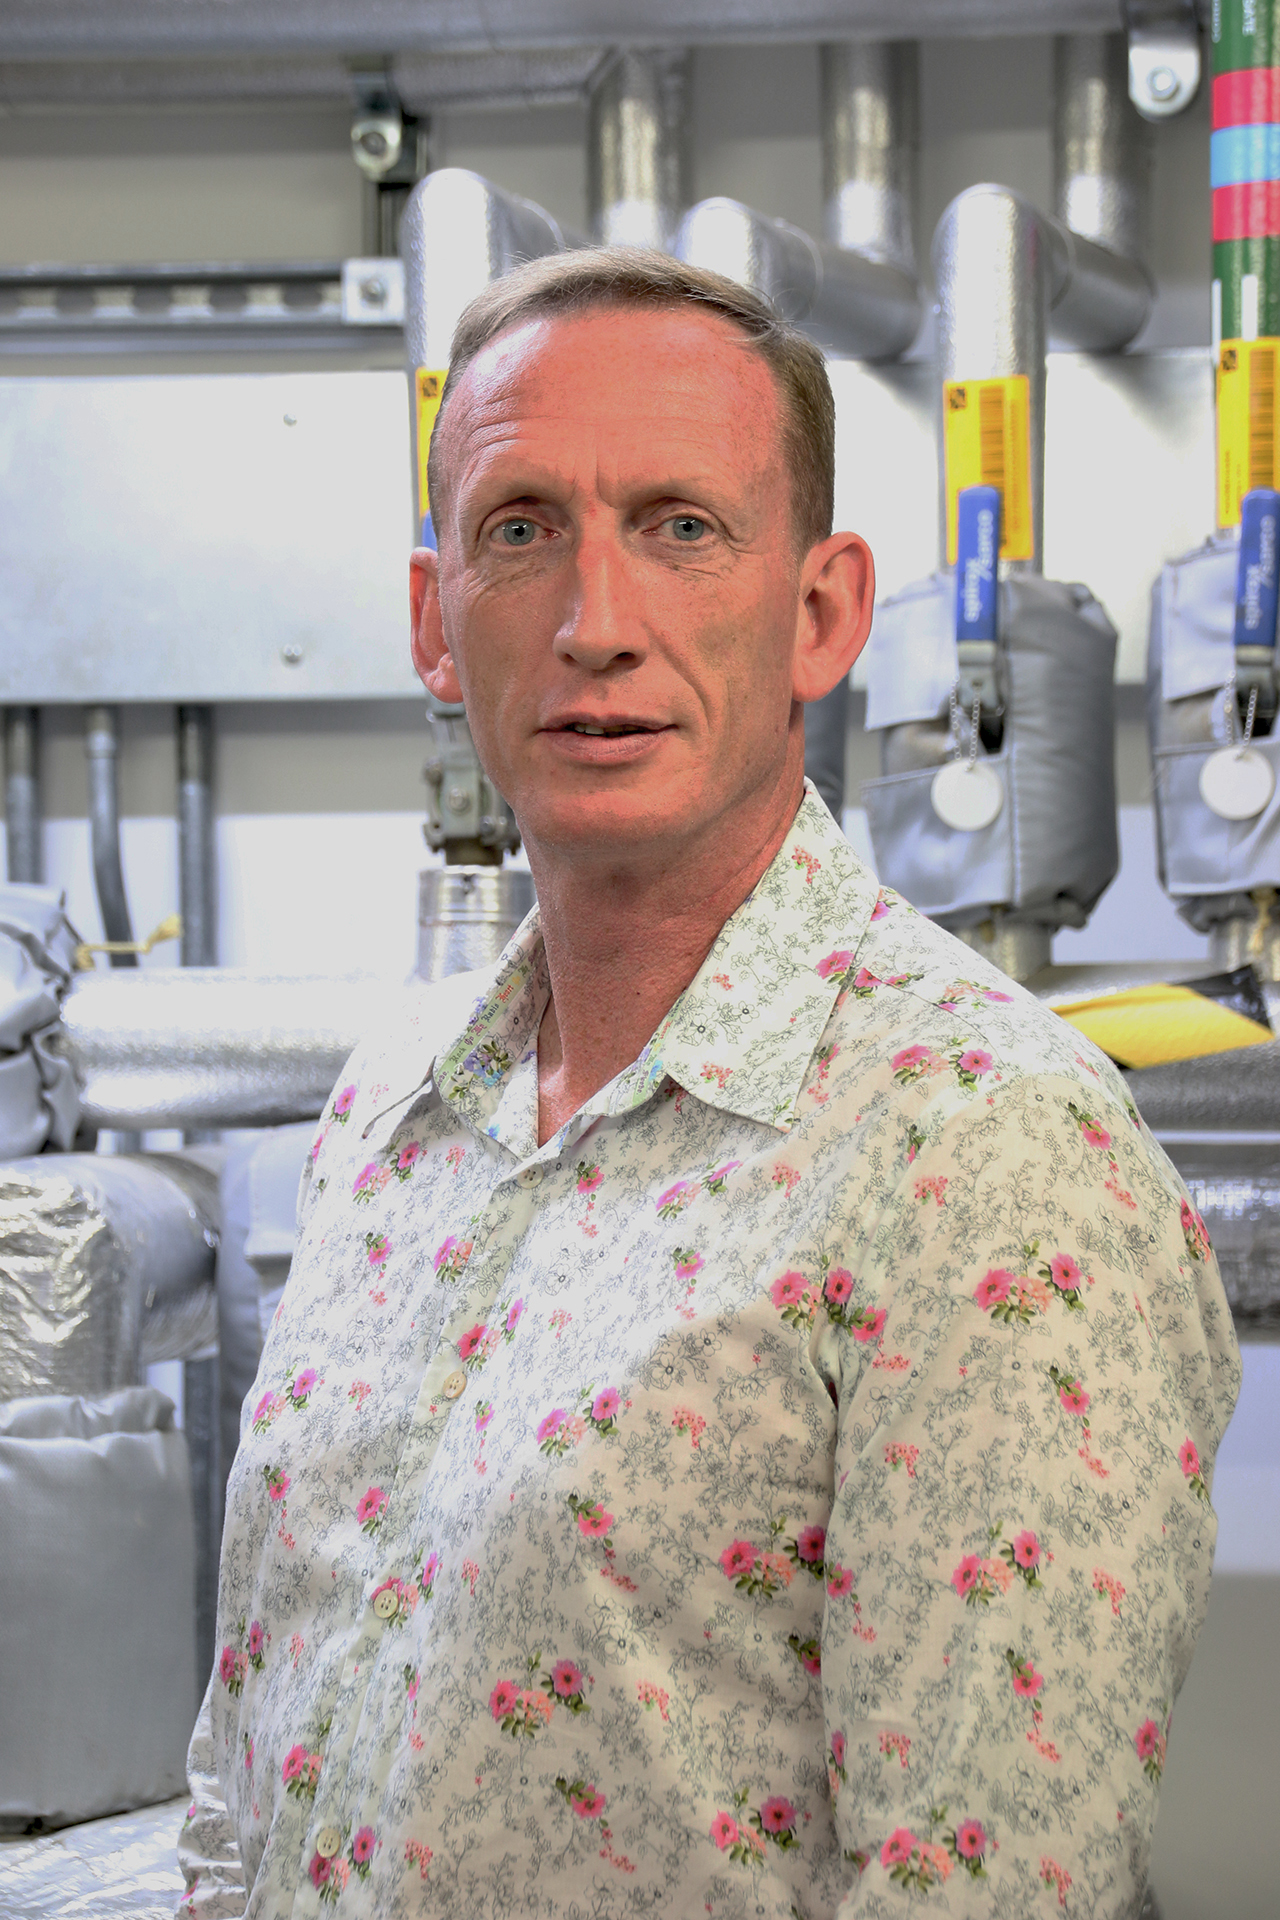 Dave Hamer wearing white shirt with small poppies, standing in effluent treatment plant at Pirbright, looking to camera